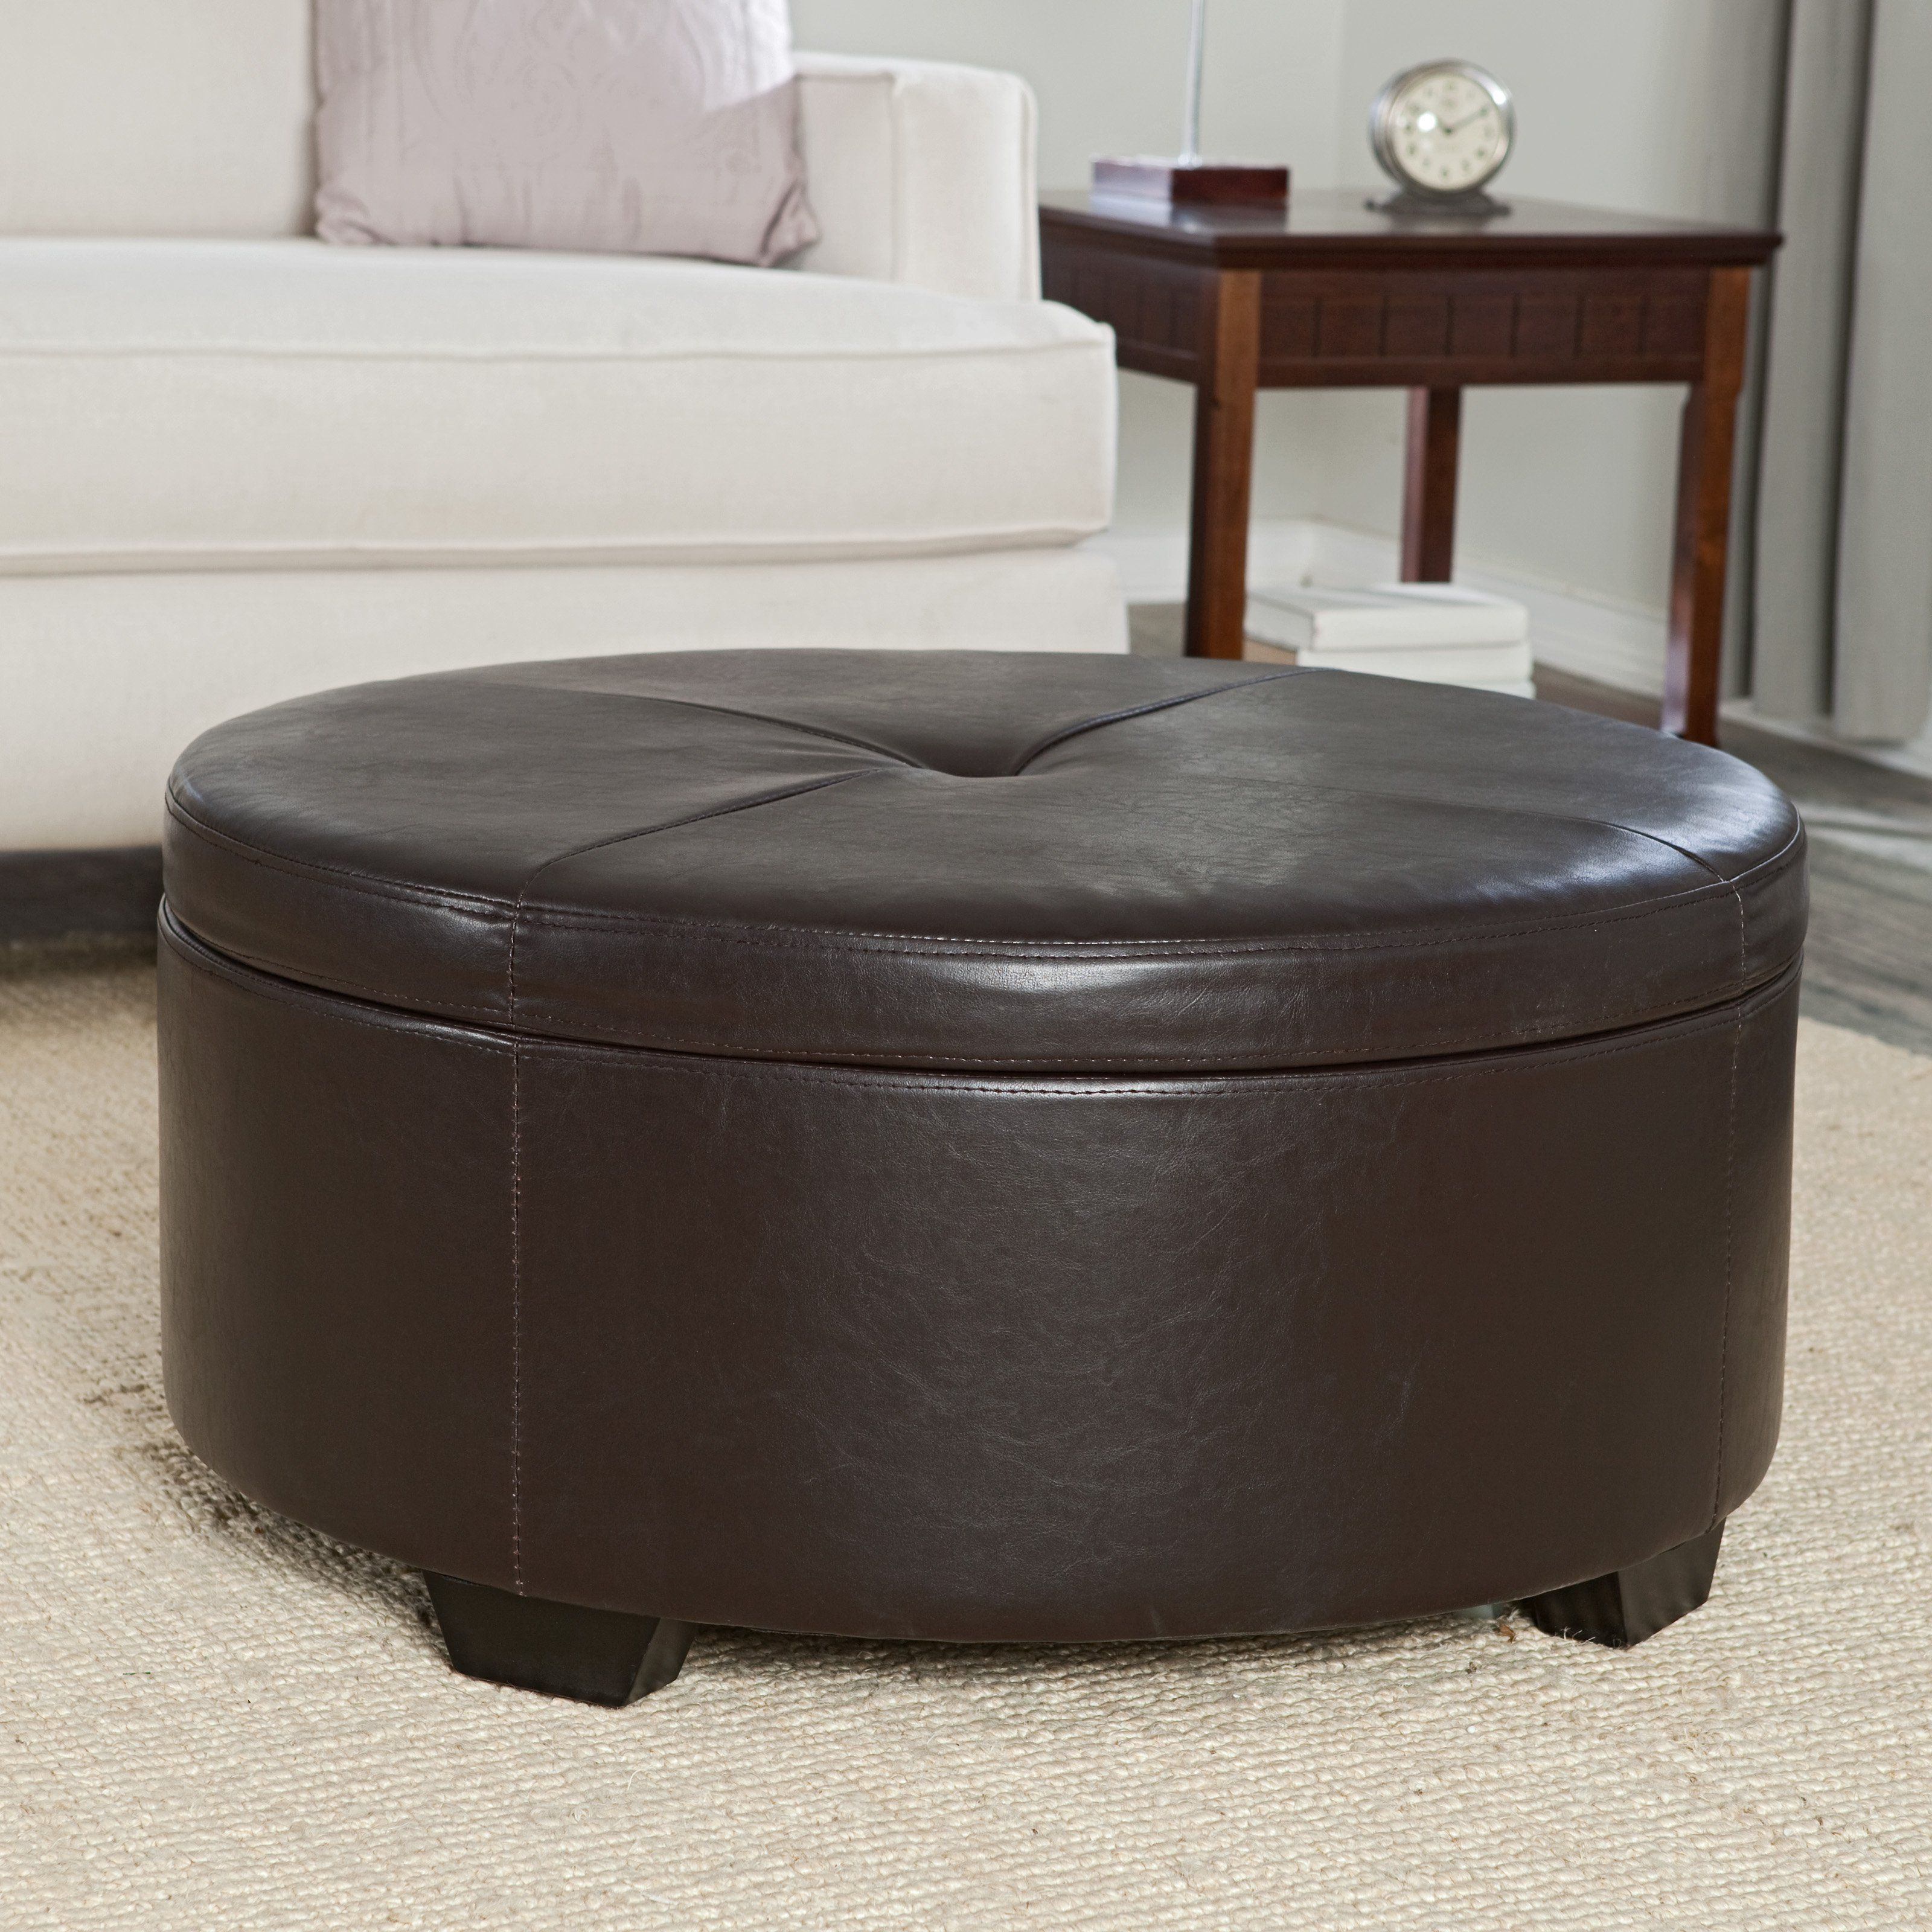 Oversized Leather Ottoman Coffee Table Collection Brown Leather Round Tufted Ot In 2020 Storage Ottoman Coffee Table Leather Ottoman Coffee Table Round Storage Ottoman